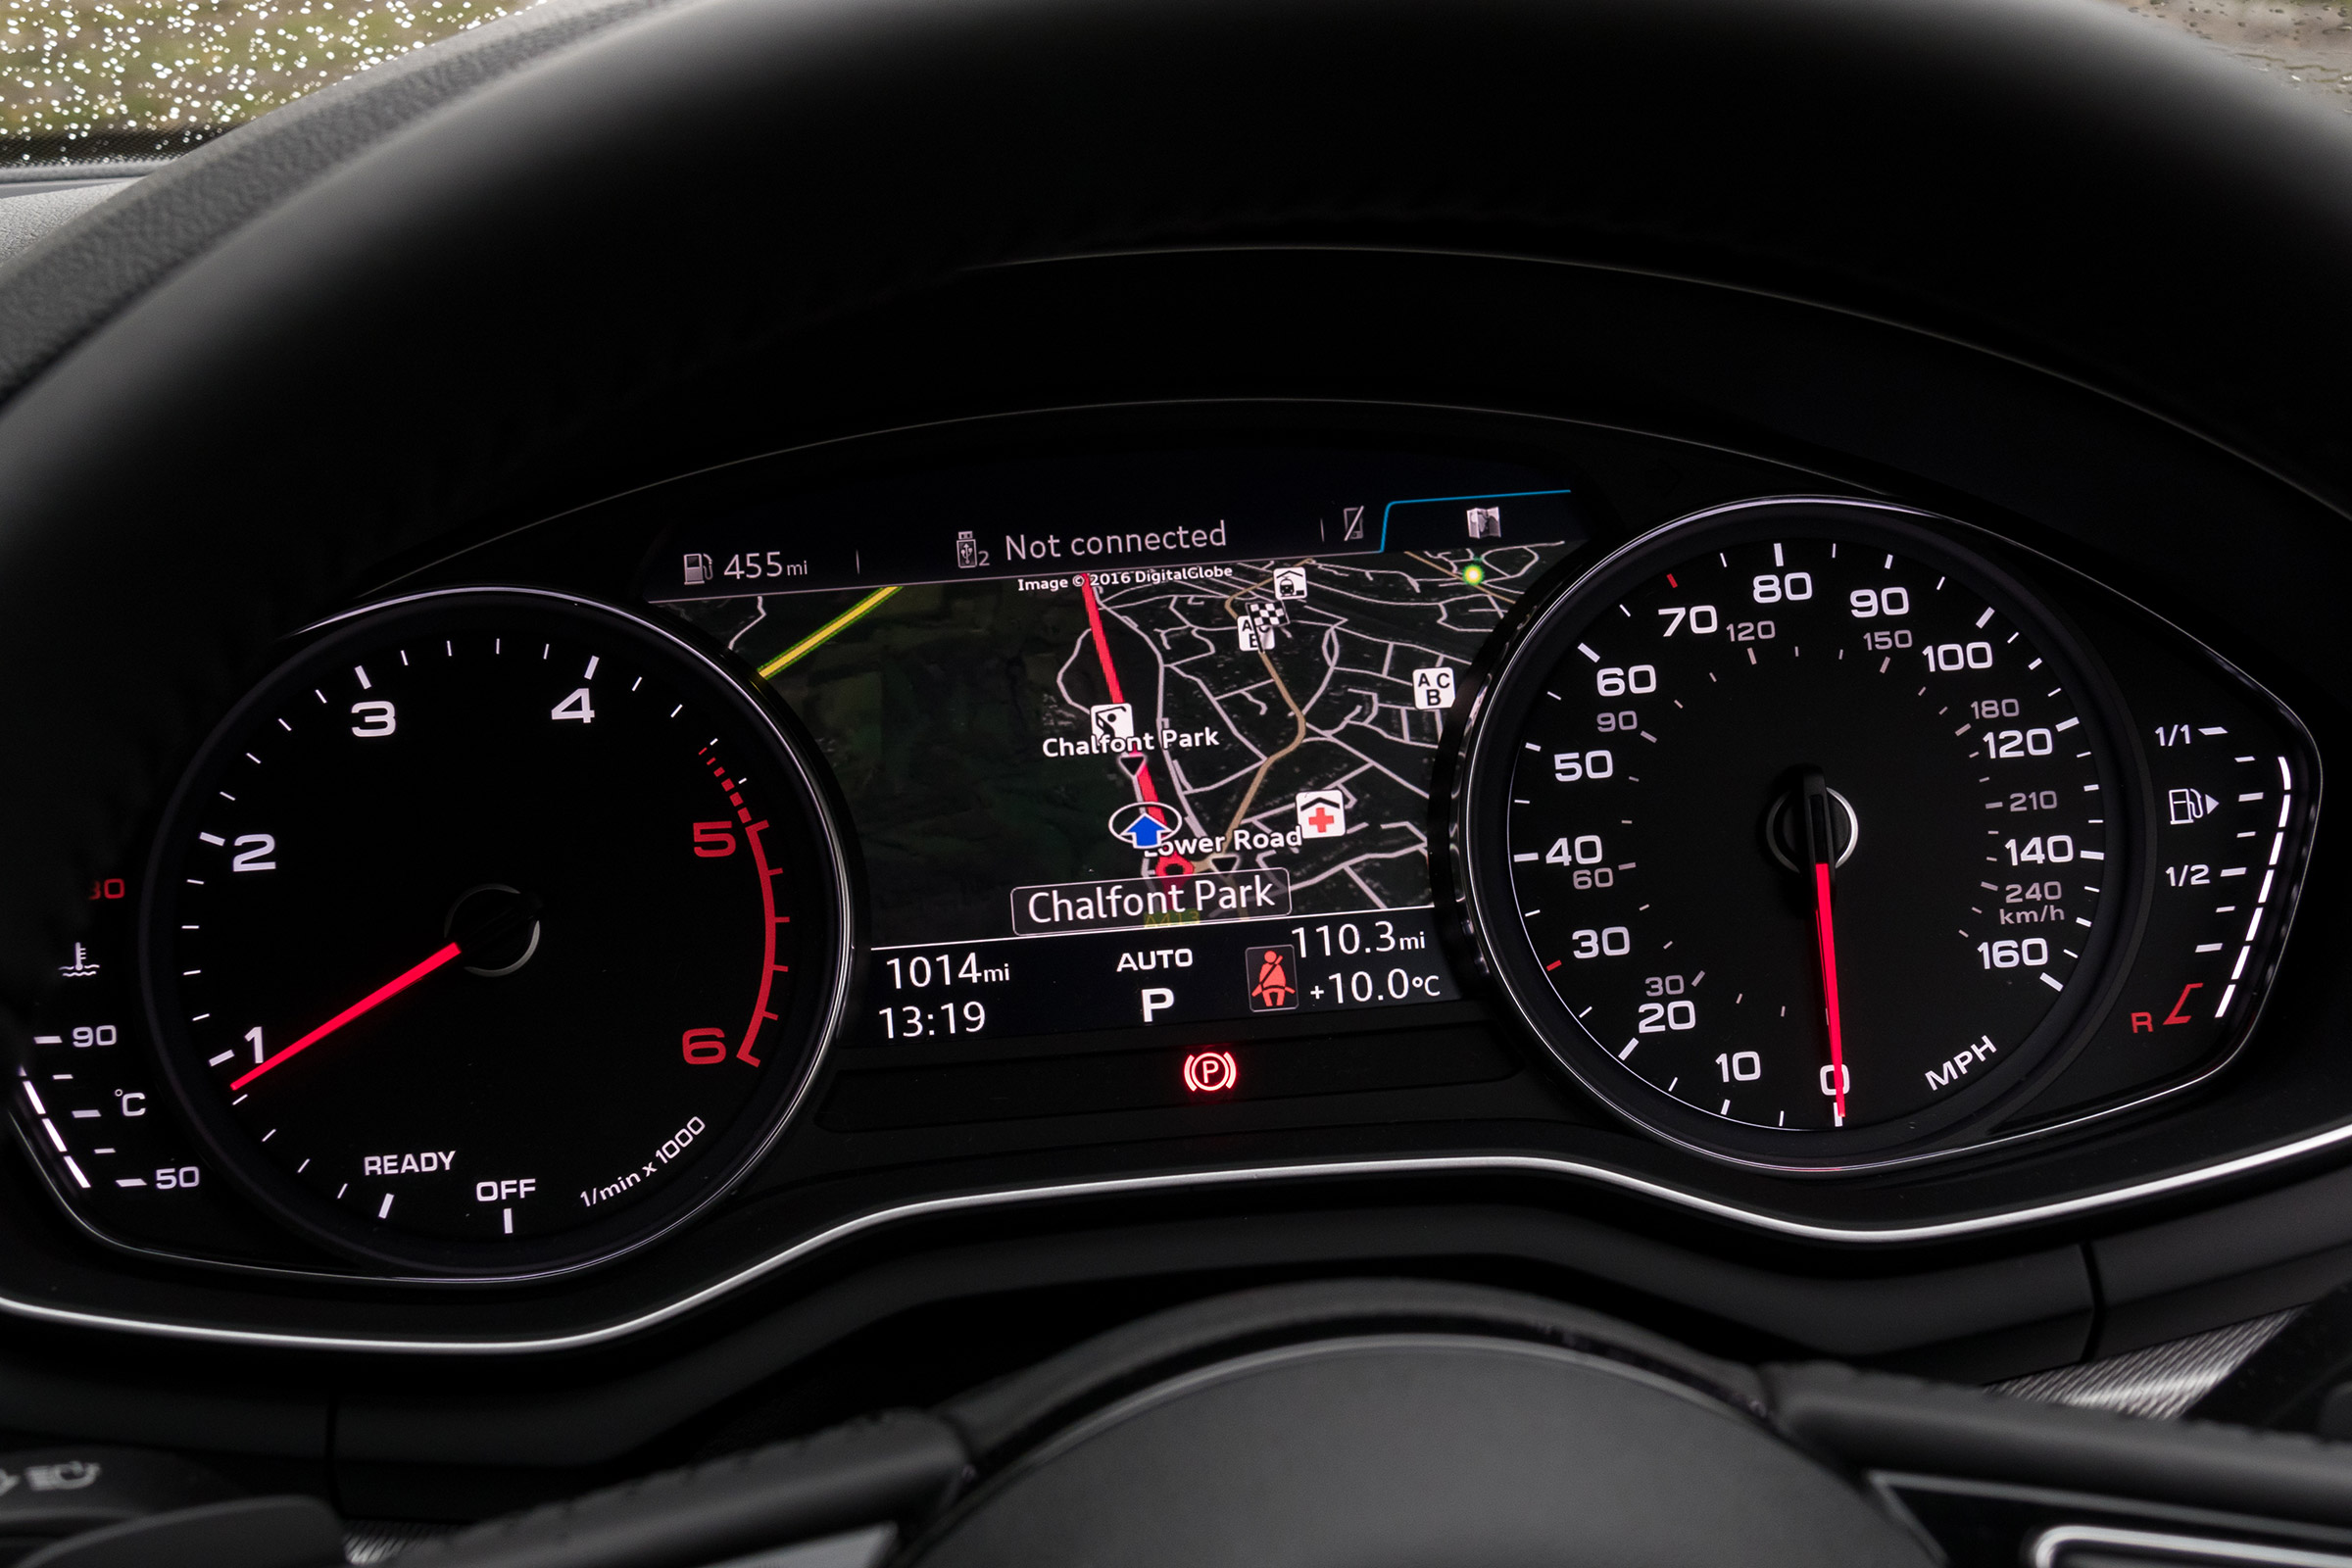 2017 Audi A5 Coupe Interior View Speedometer Instrument Cluster (Photo 9 of 21)